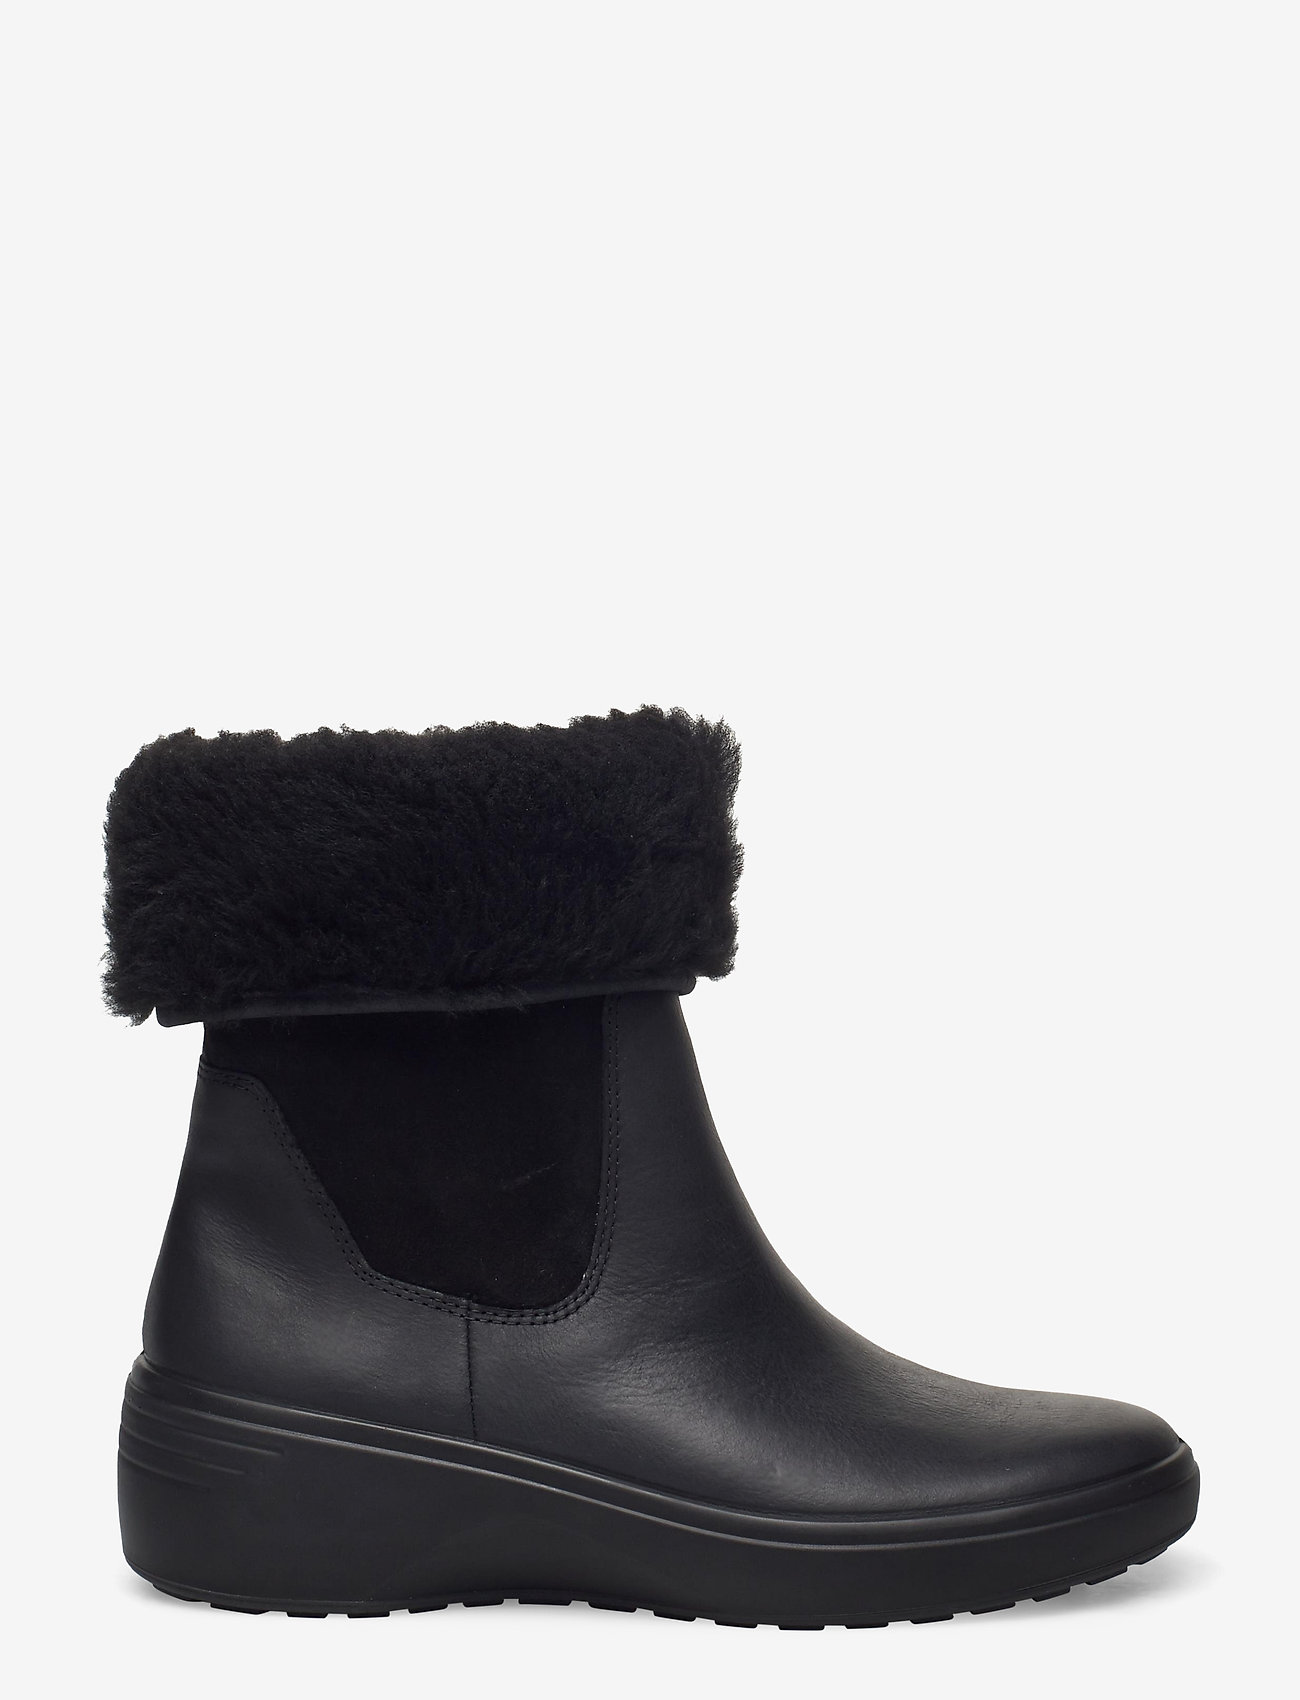 ECCO - SOFT 7 WEDGE TRED - flat ankle boots - black/black - 1